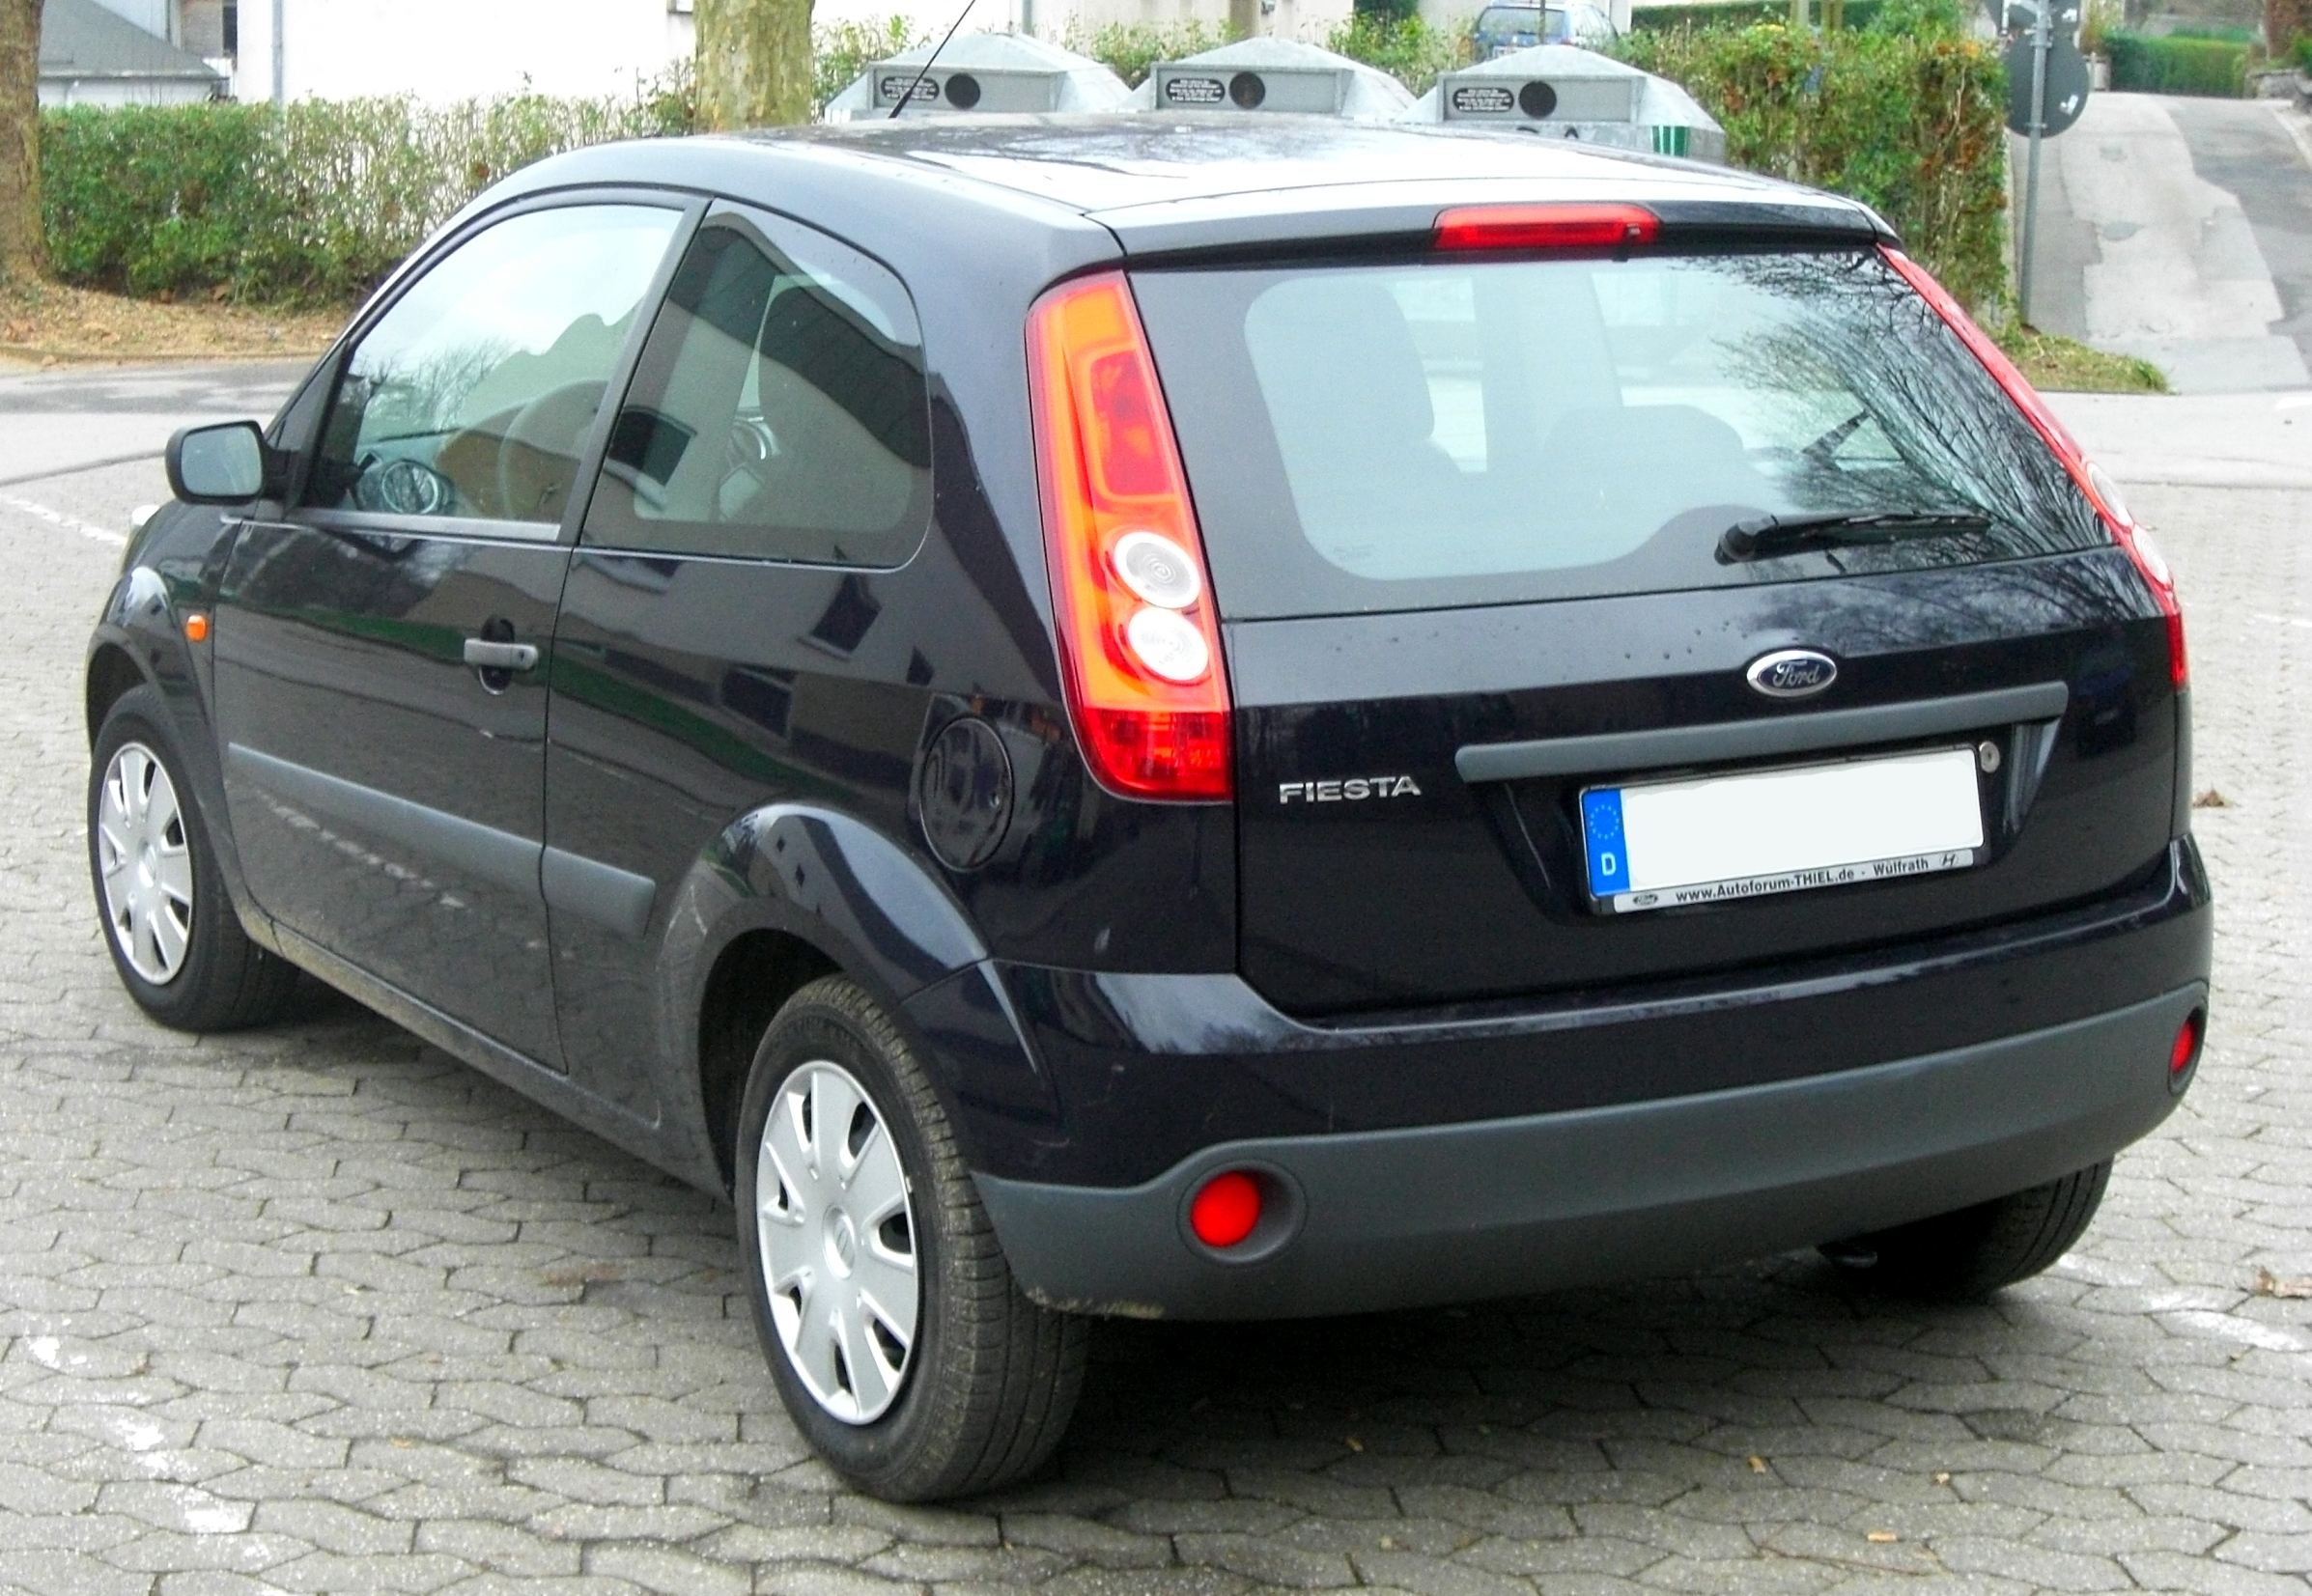 archivo ford fiesta mk6 facelift 2005 2008 rear mj jpg wikipedia la enciclopedia libre. Black Bedroom Furniture Sets. Home Design Ideas